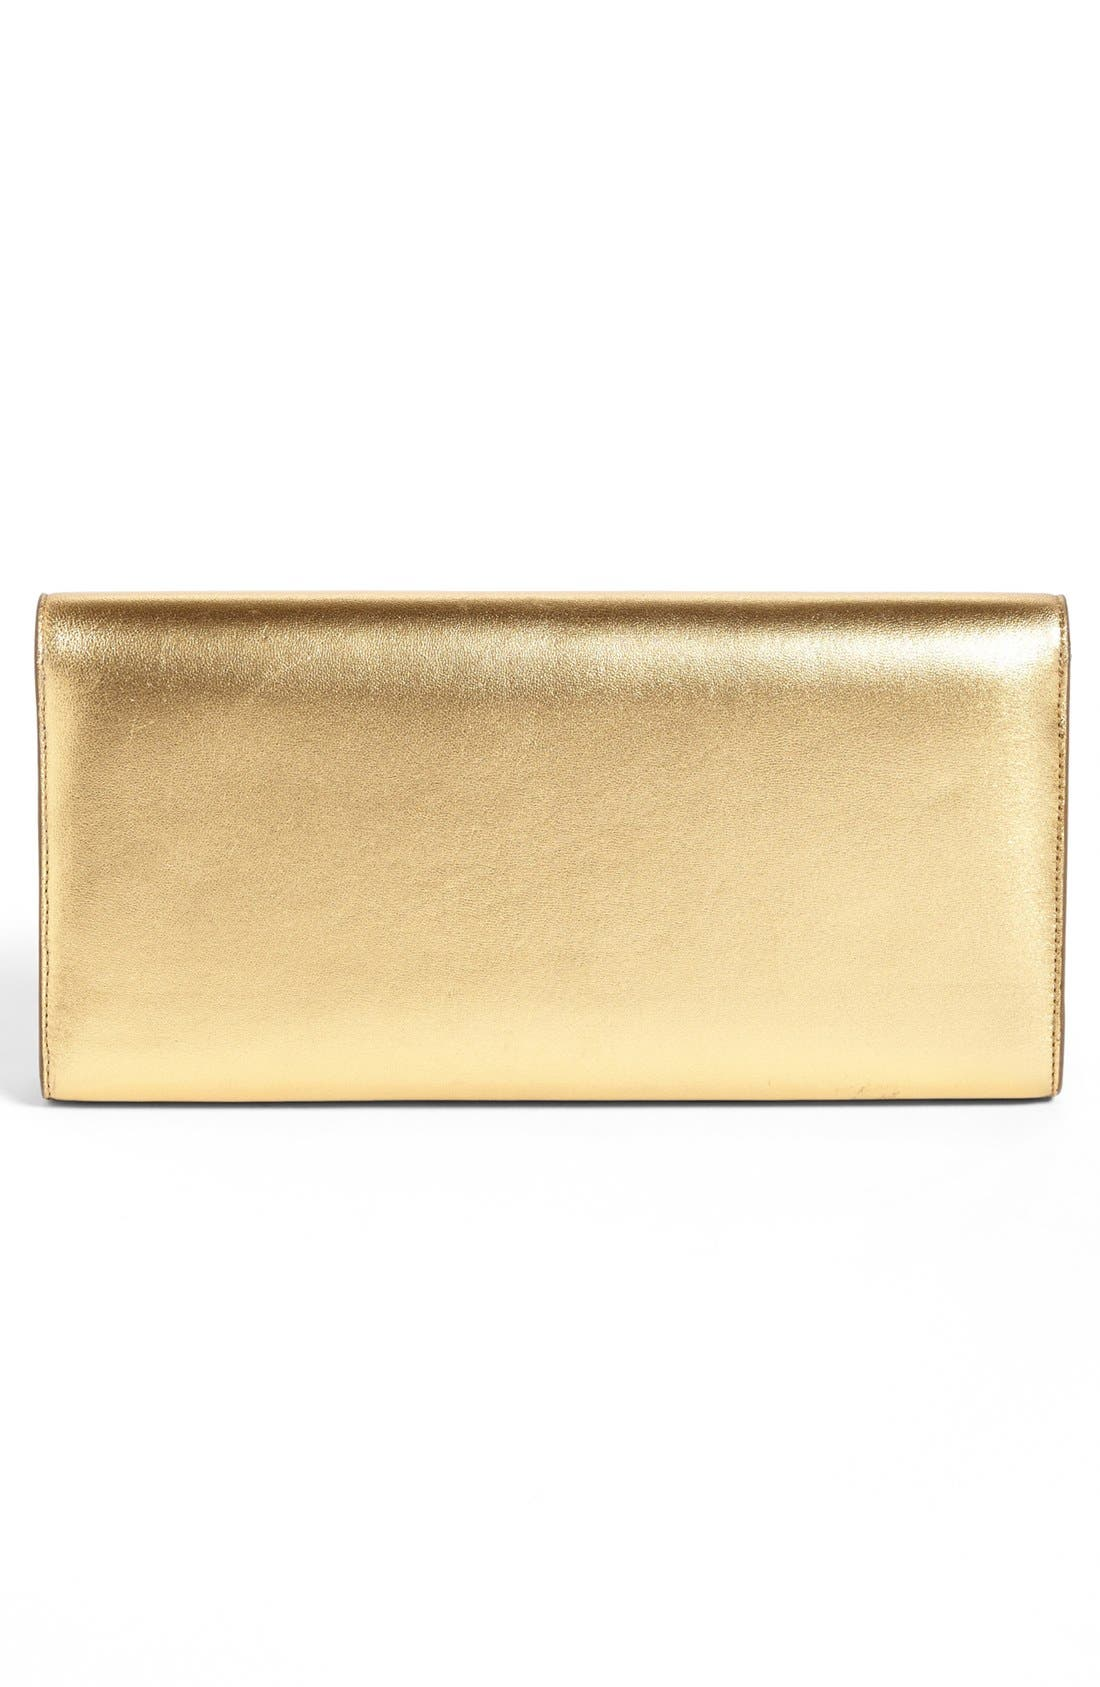 'Cassandre' Leather Clutch,                             Alternate thumbnail 4, color,                             710